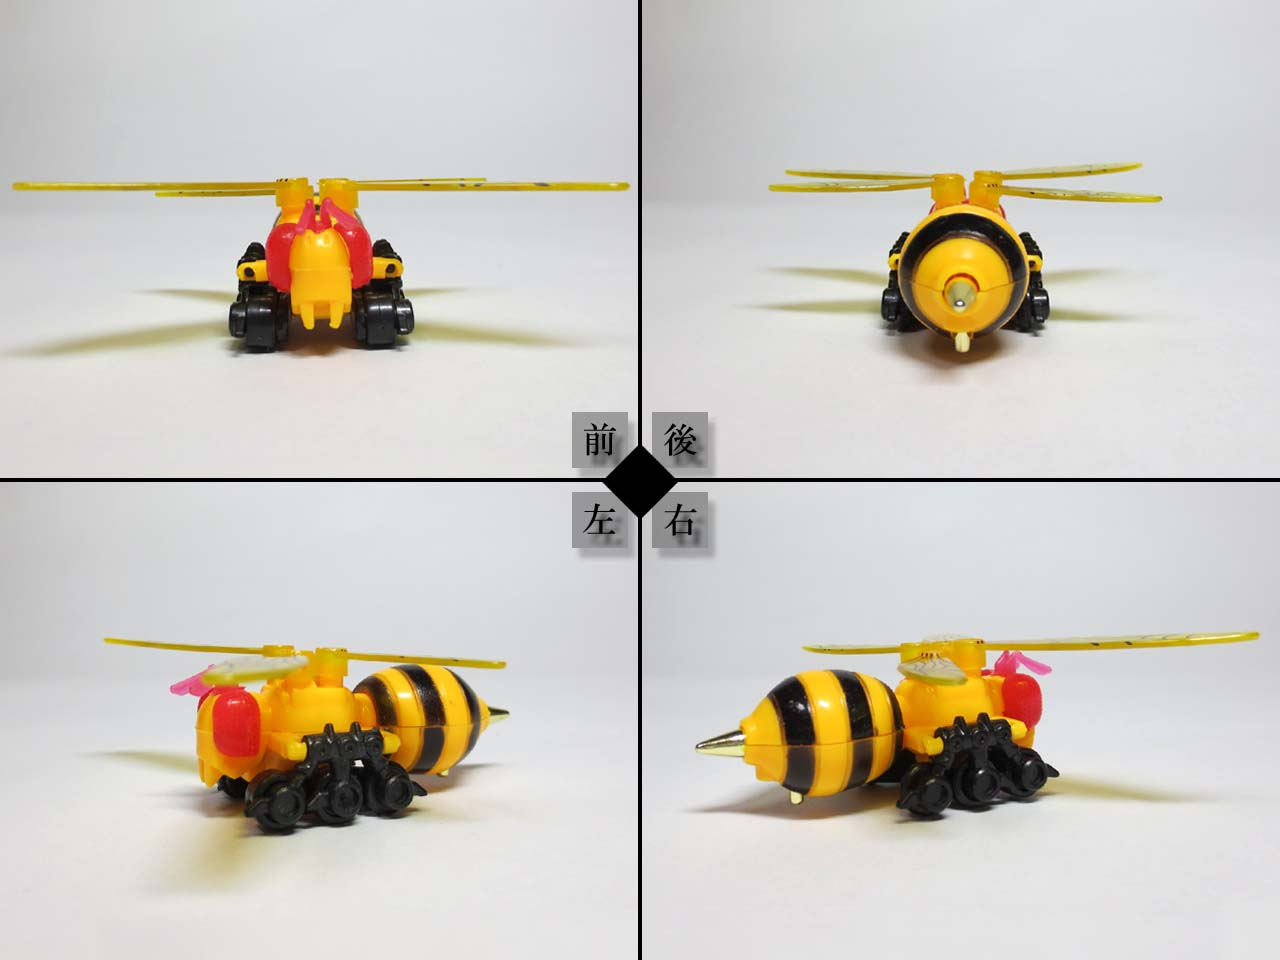 Insect_Combined_robot_09.jpg